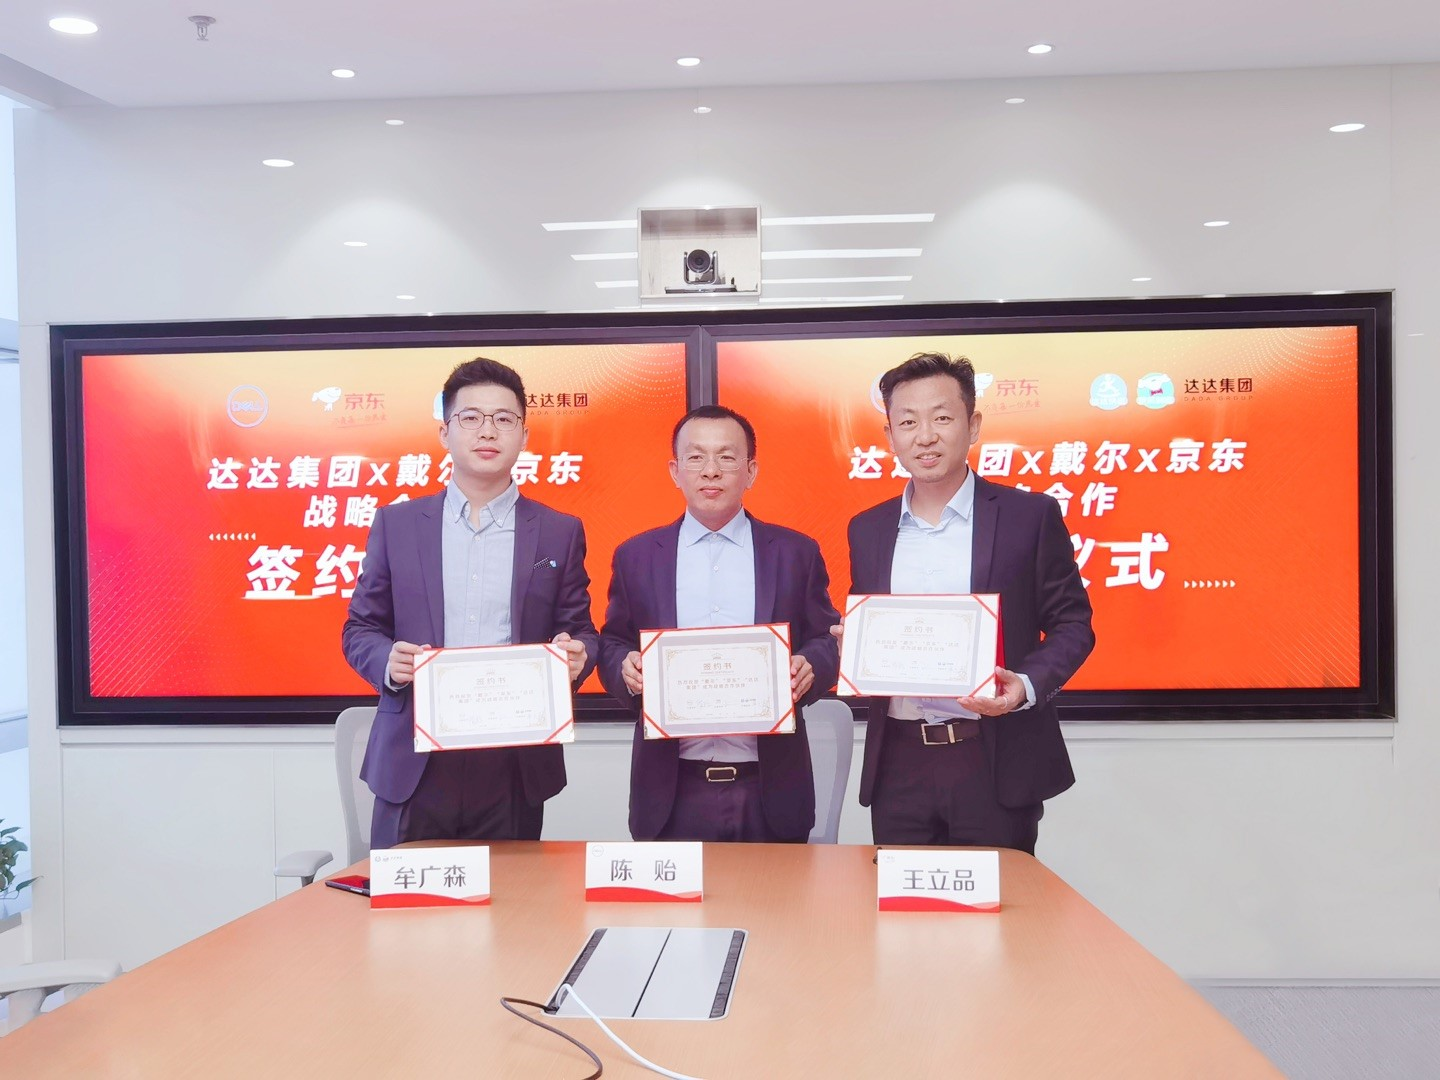 Over 200 Dell Stores launched on JD.com and JDDJ